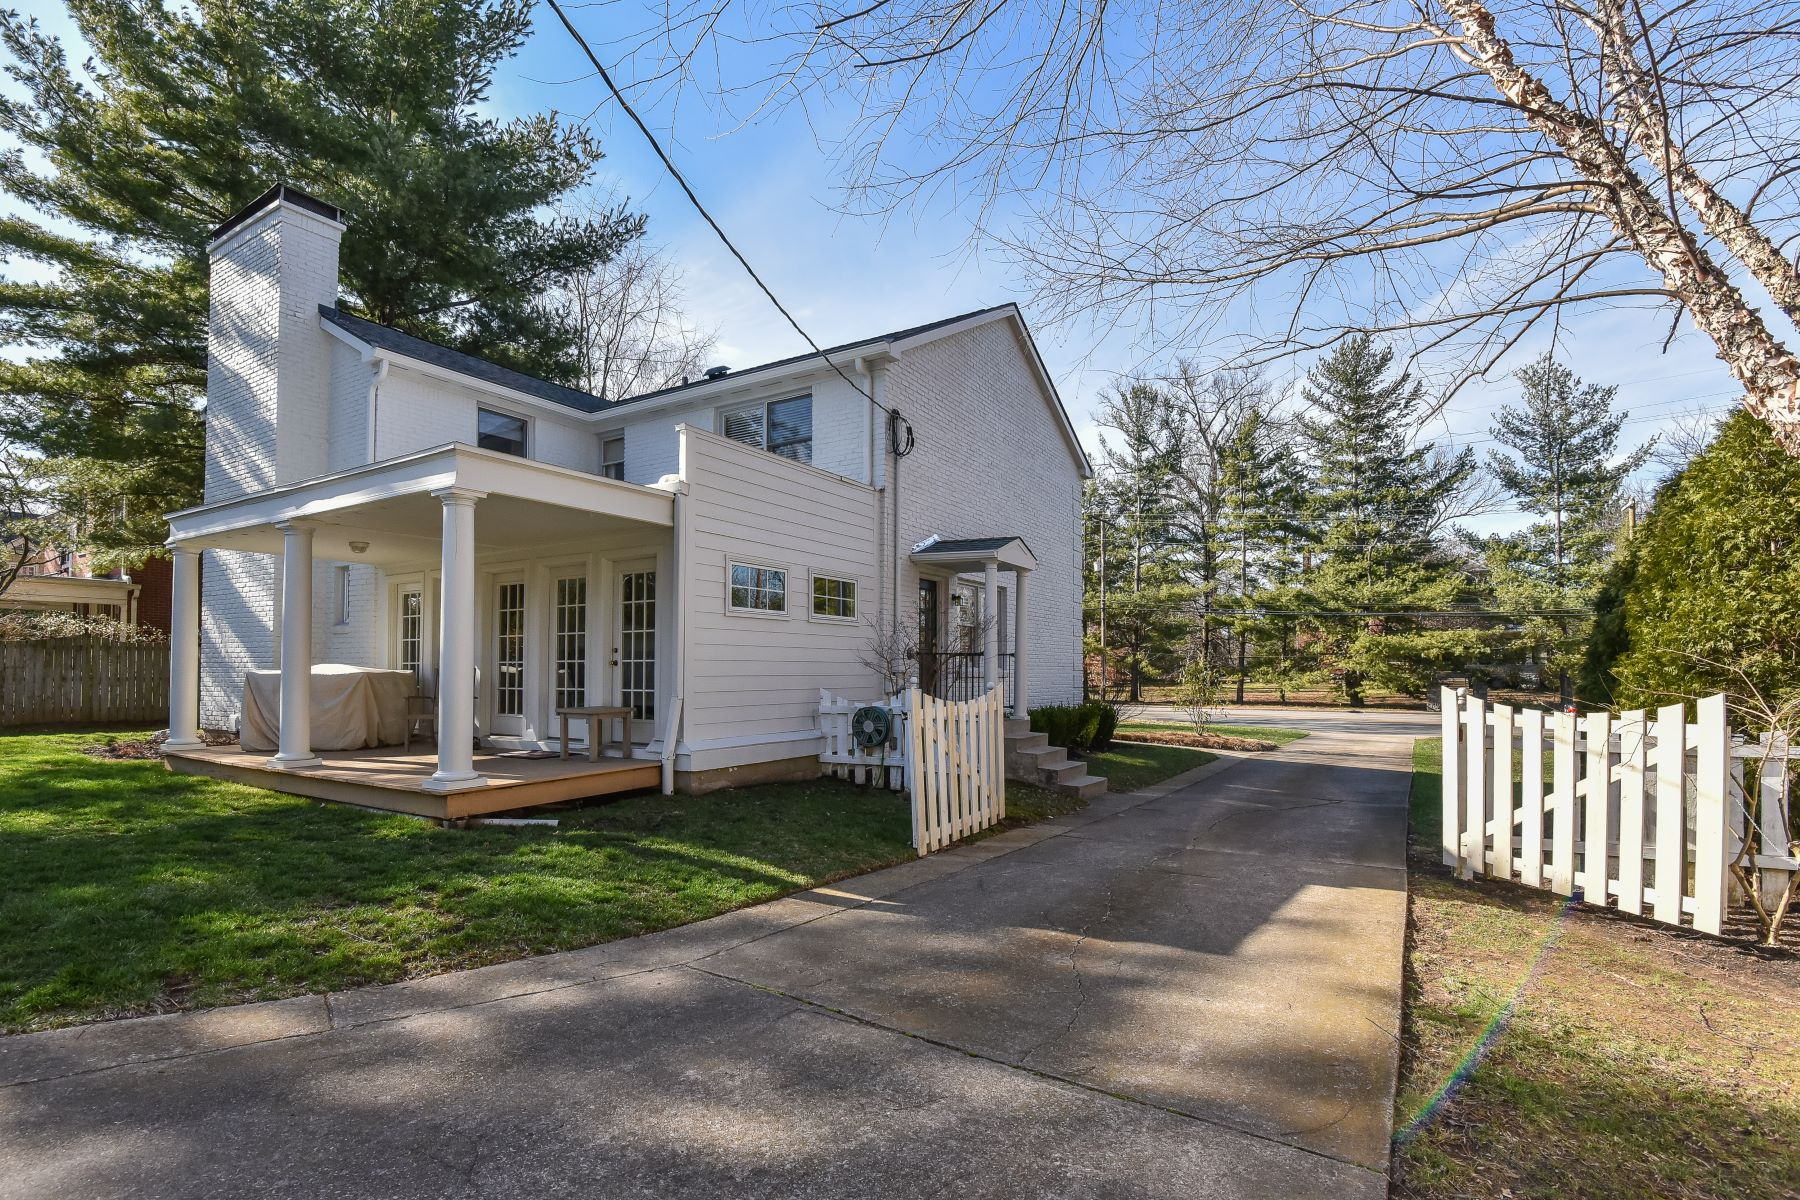 Additional photo for property listing at 2948 Lexington Road 2948 Lexington Road Louisville, Kentucky 40206 United States